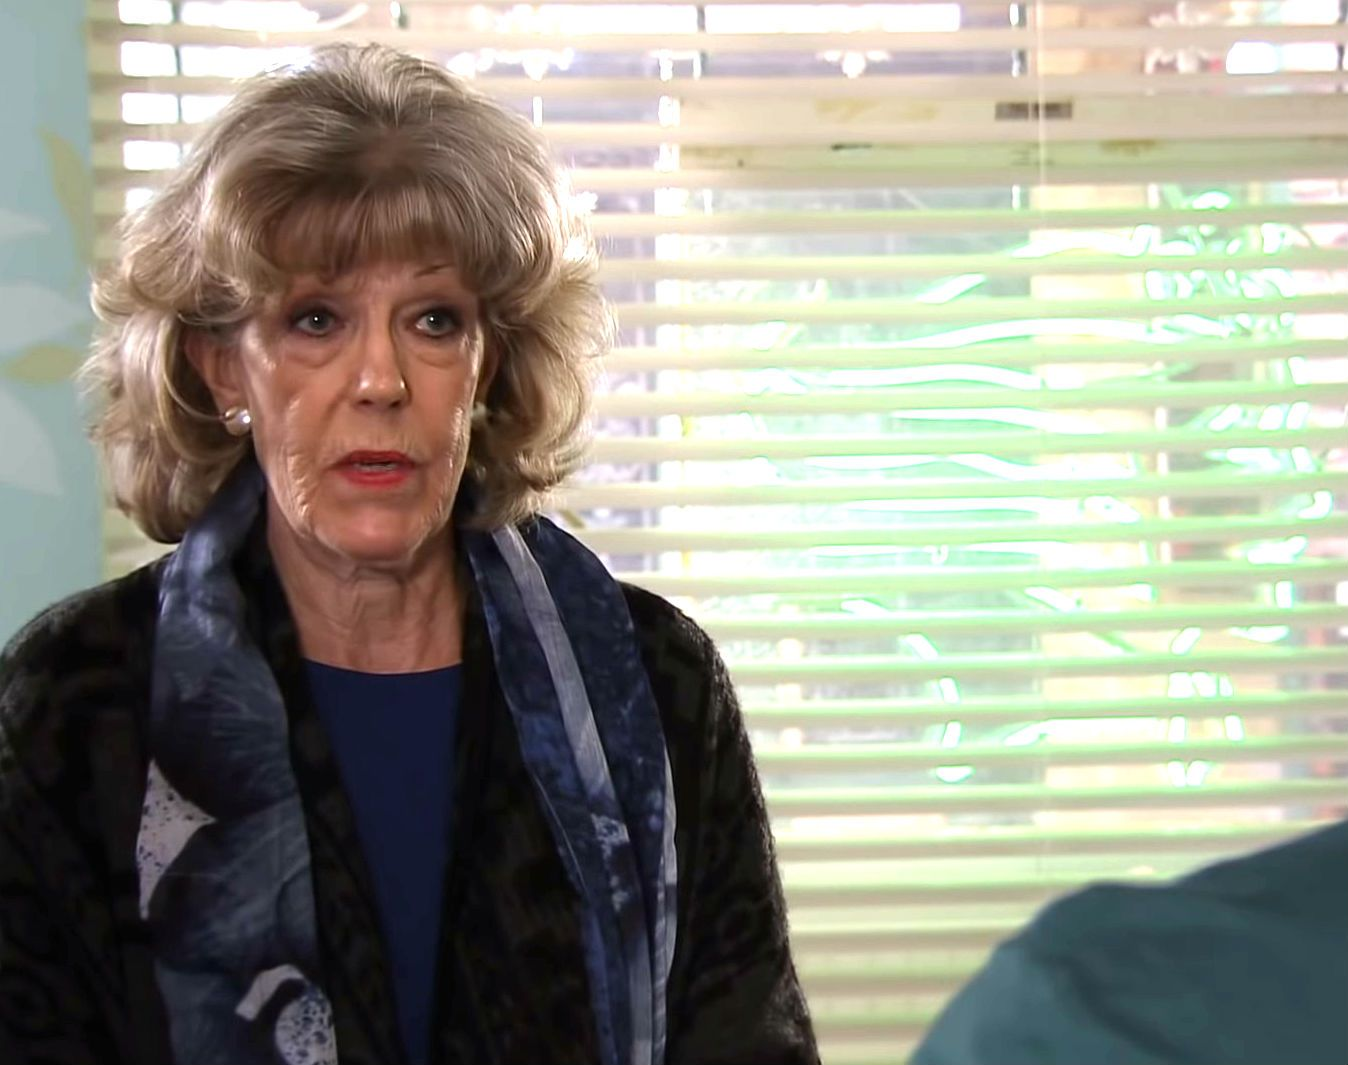 Coronation Street's Sue Nicholls reveals she was written out of scenes after an accident at home